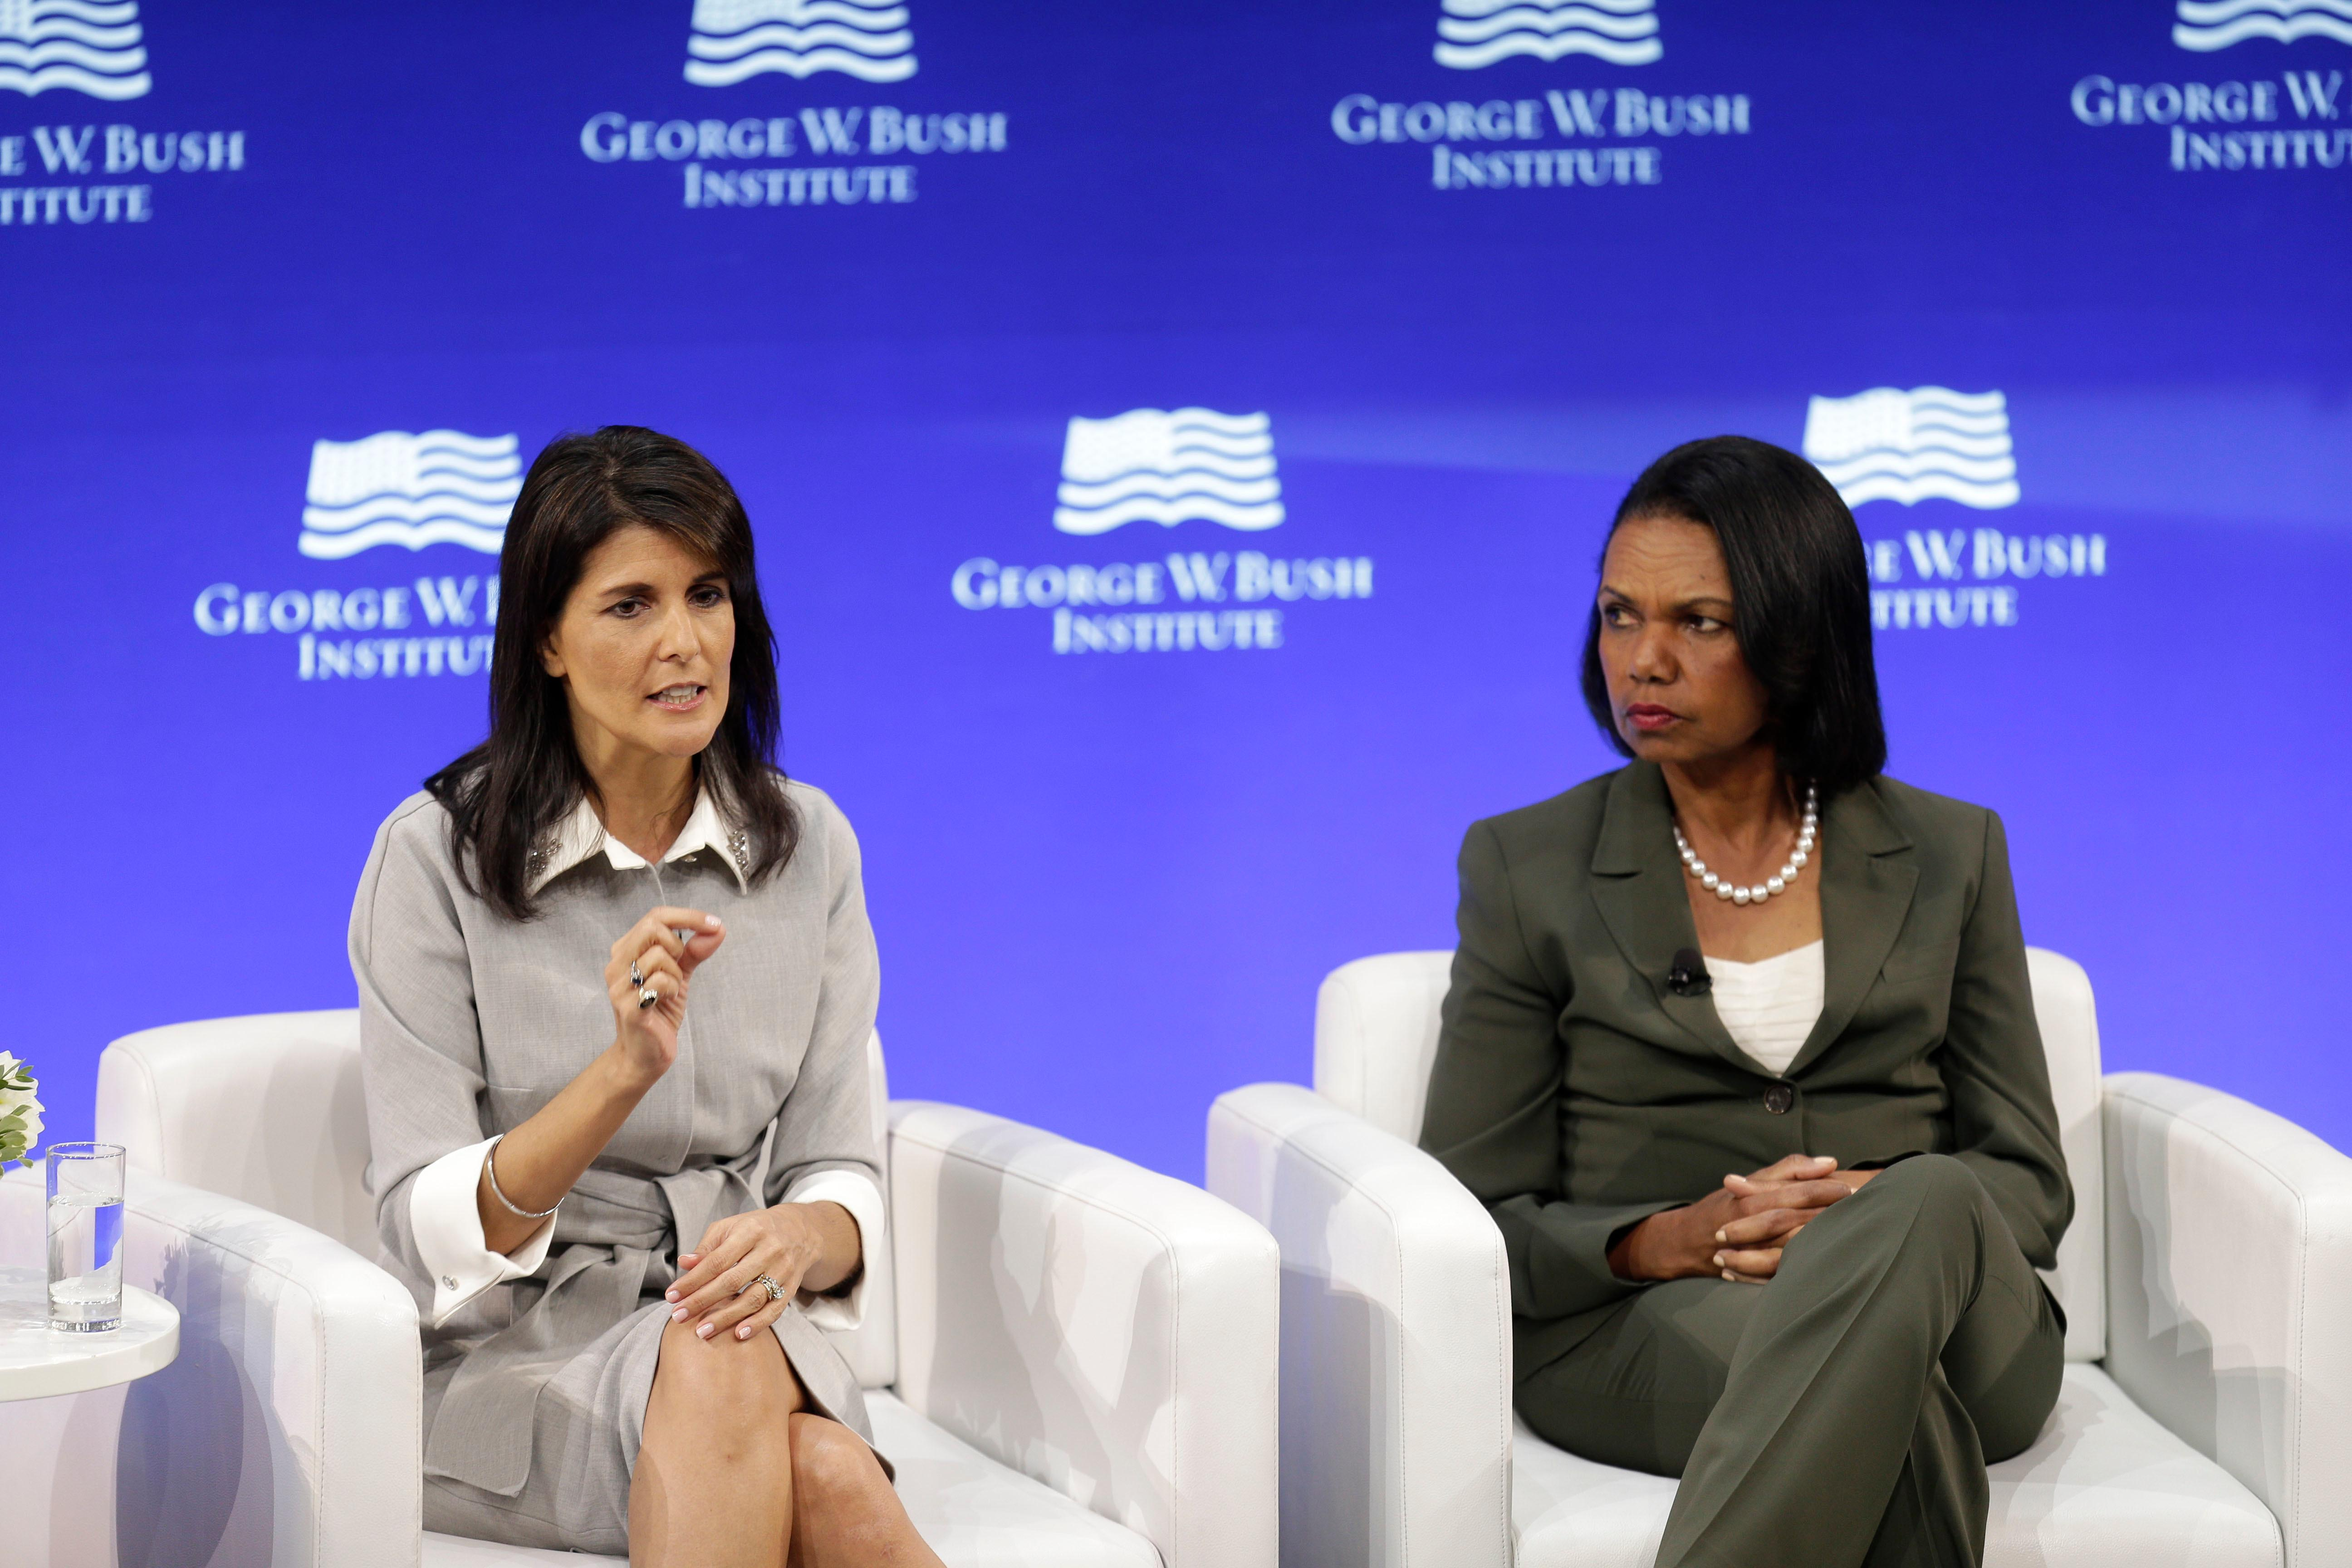 U.S. Ambassador to the United Nations Nikki Haley, left, and former U.S. Secretary of State Condoleezza Rice participate in a panel discussion at a forum sponsored by the George W. Bush Institute in New York, Thursday, Oct. 19, 2017. (AP Photo/Seth Wenig)